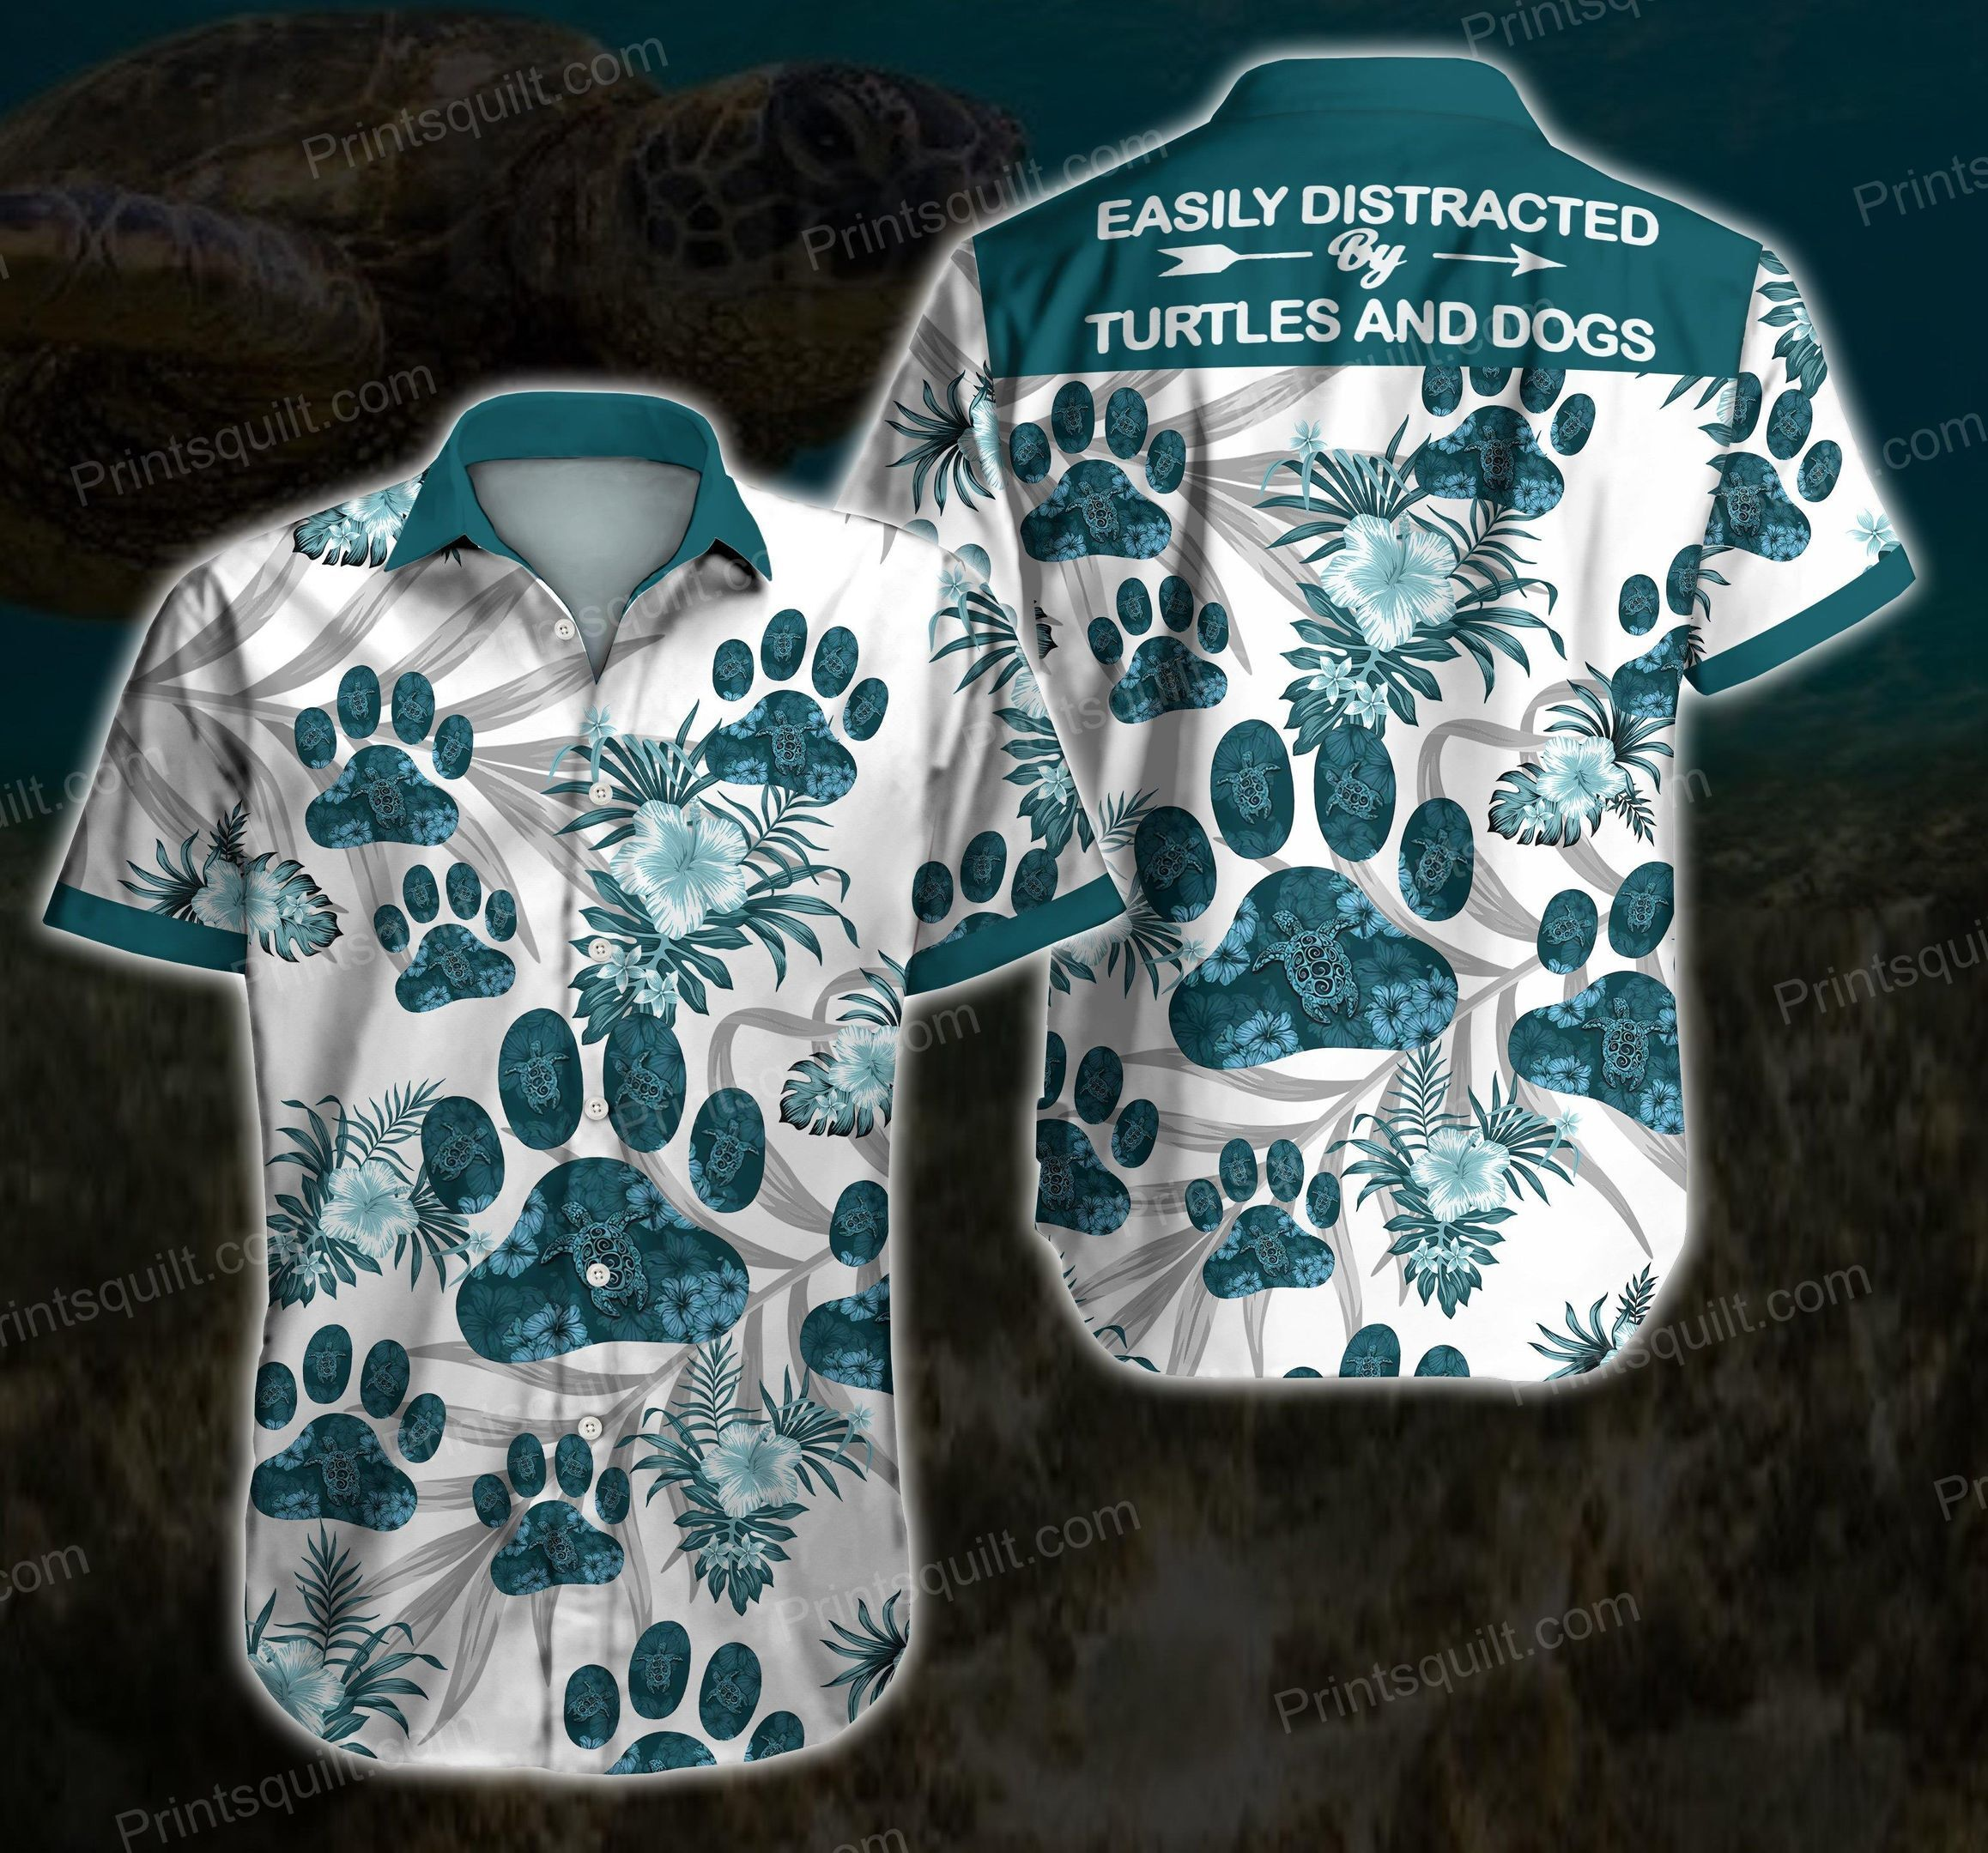 Easily distracted turtles and dogs Lovers Hawaii Shirt